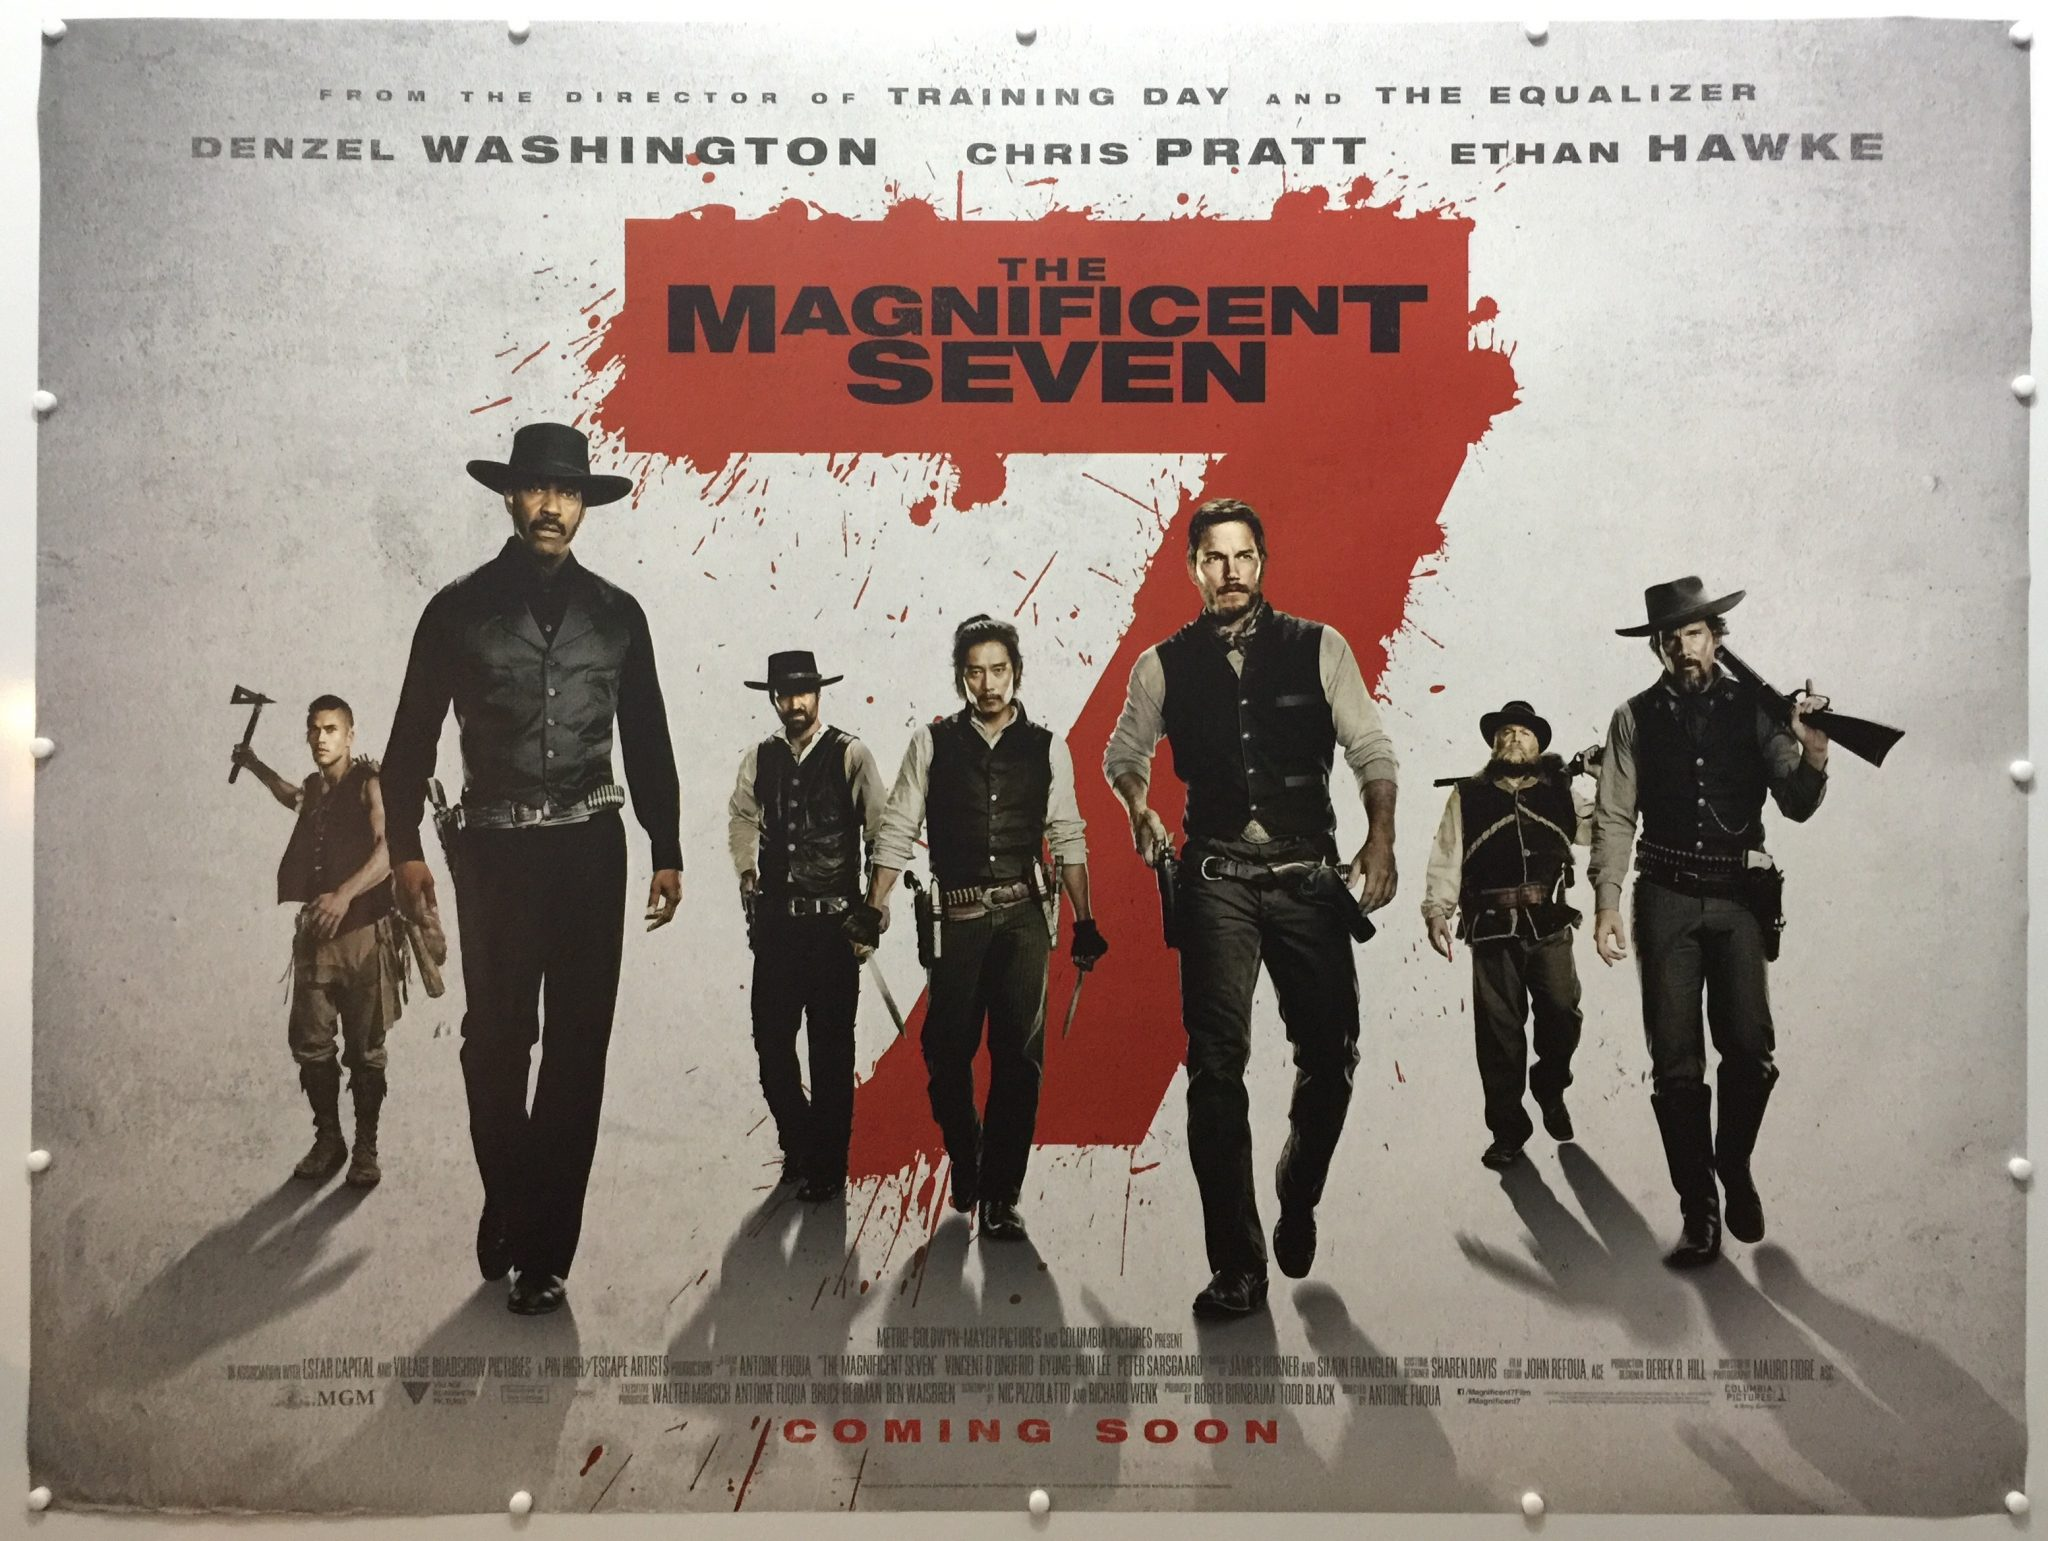 Movies 2016 Posters: The Magnificent Seven